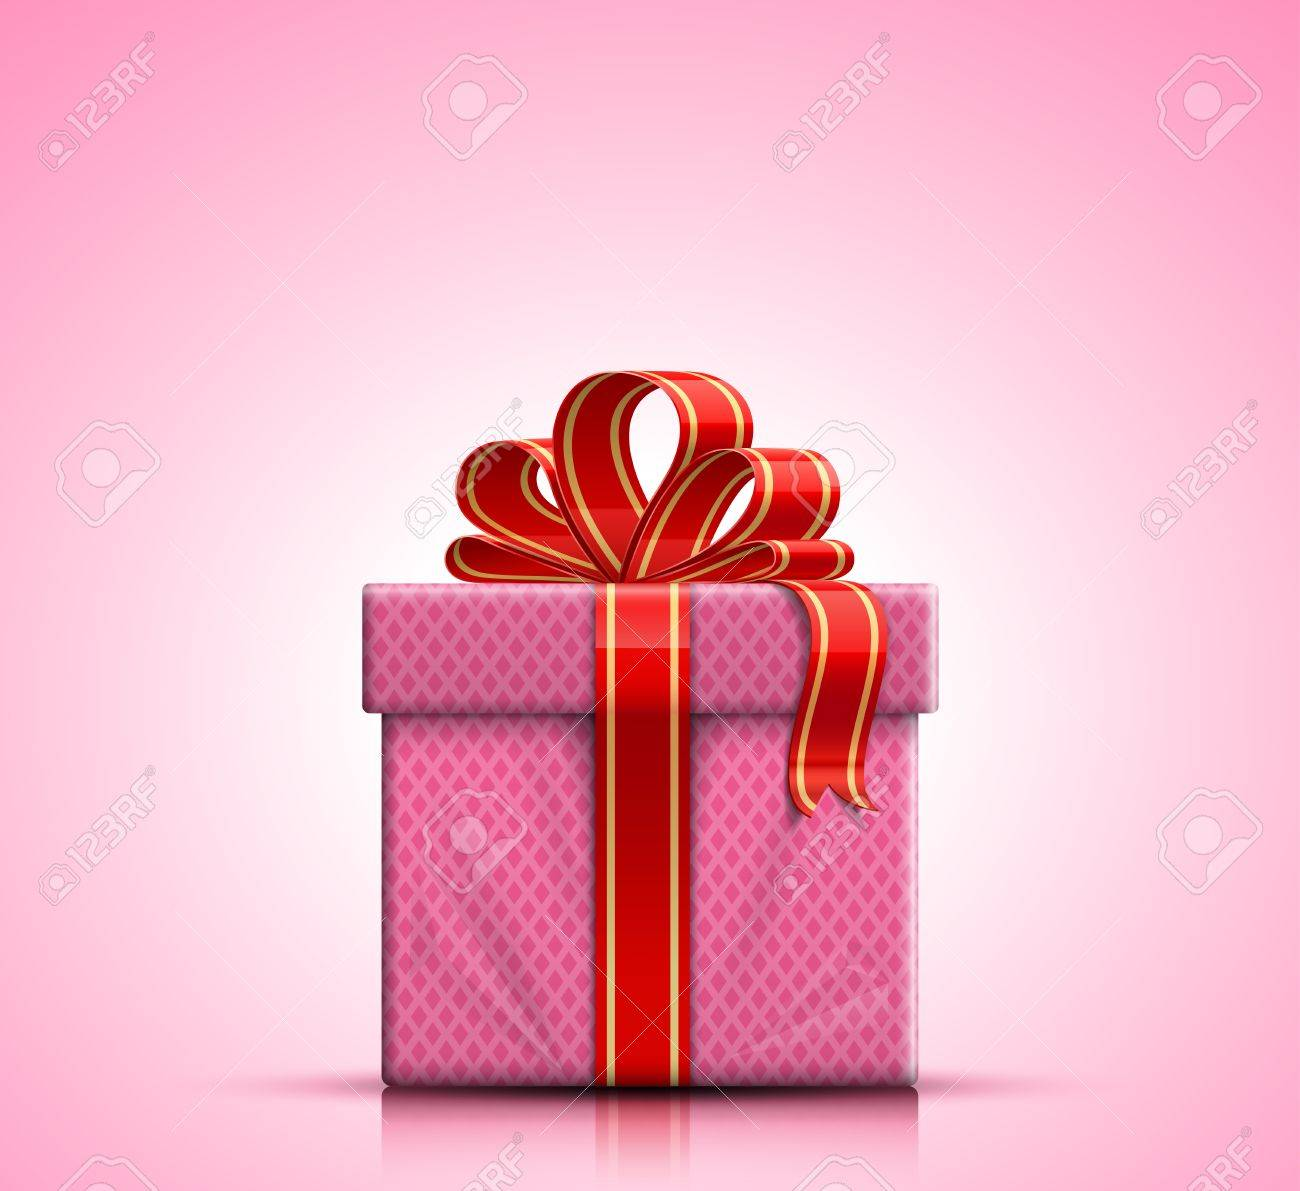 Valentine Gift Box With Red Ribbon And Bow On Pink Background